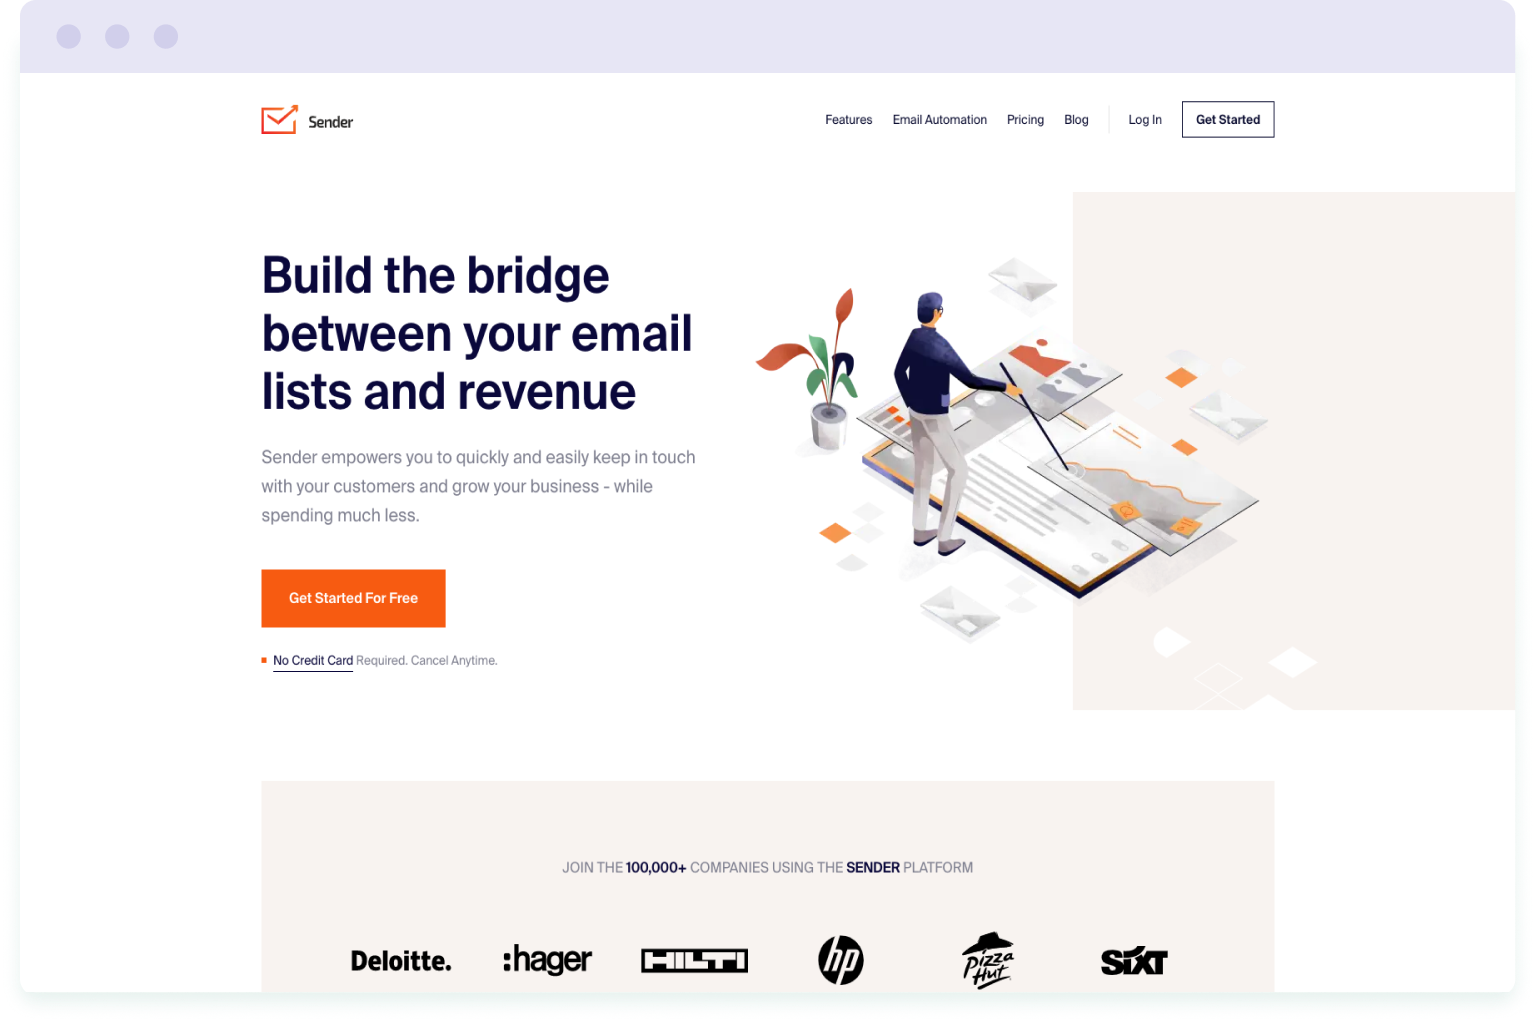 Image of the website homepage for Sender, a cheaper alternative to Mailchimp